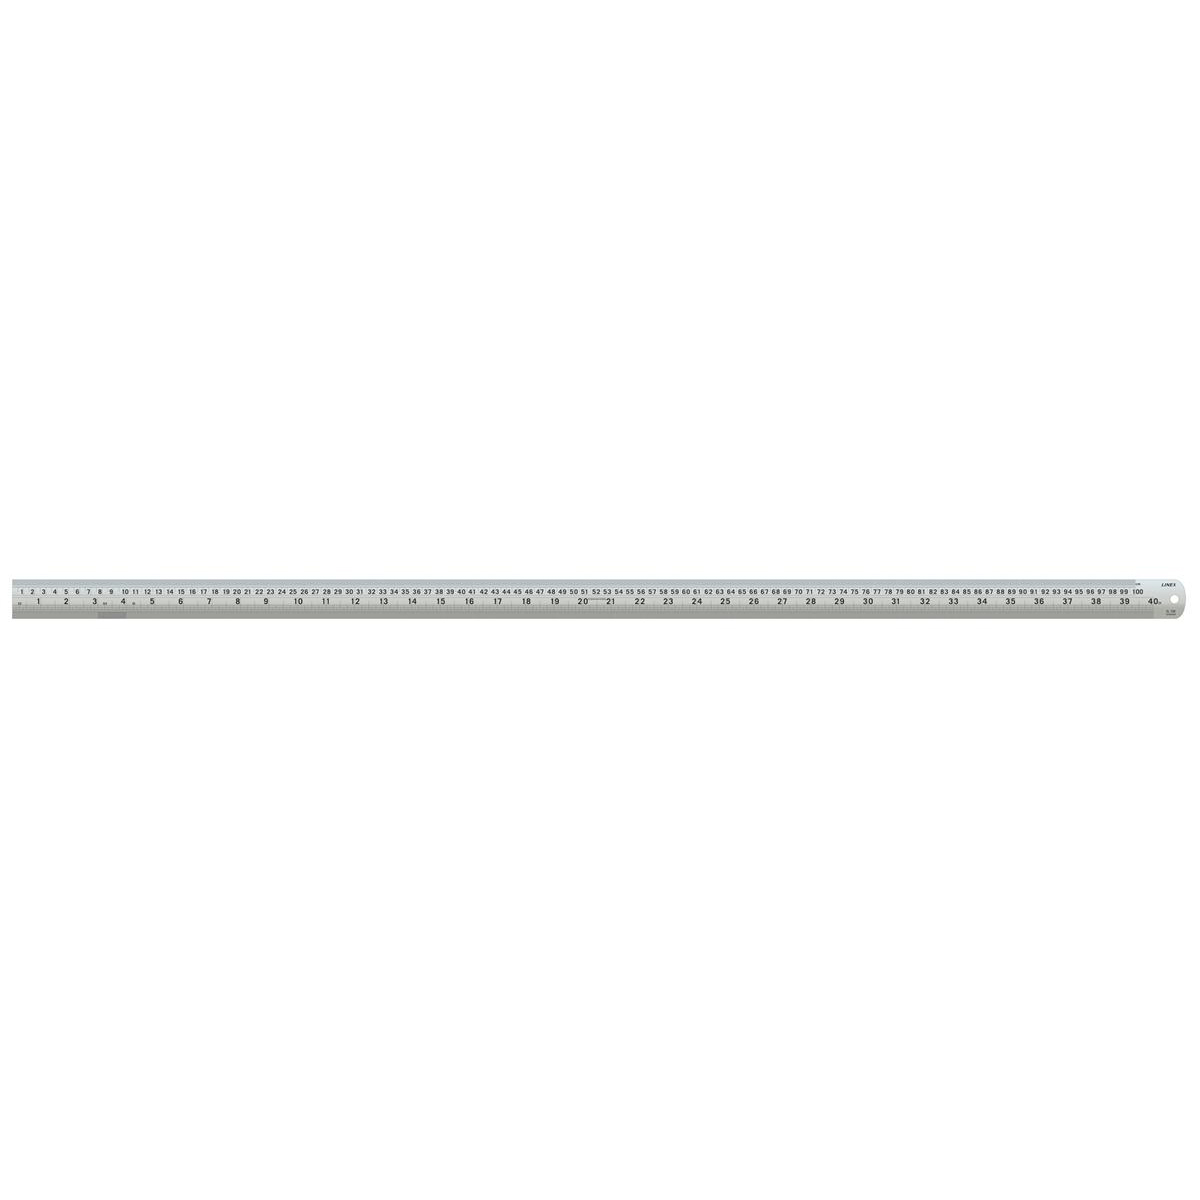 Rulers Linex Ruler Stainless Steel Imperial and Metric with Conversion Table 1000mm Silver Ref LXESL100